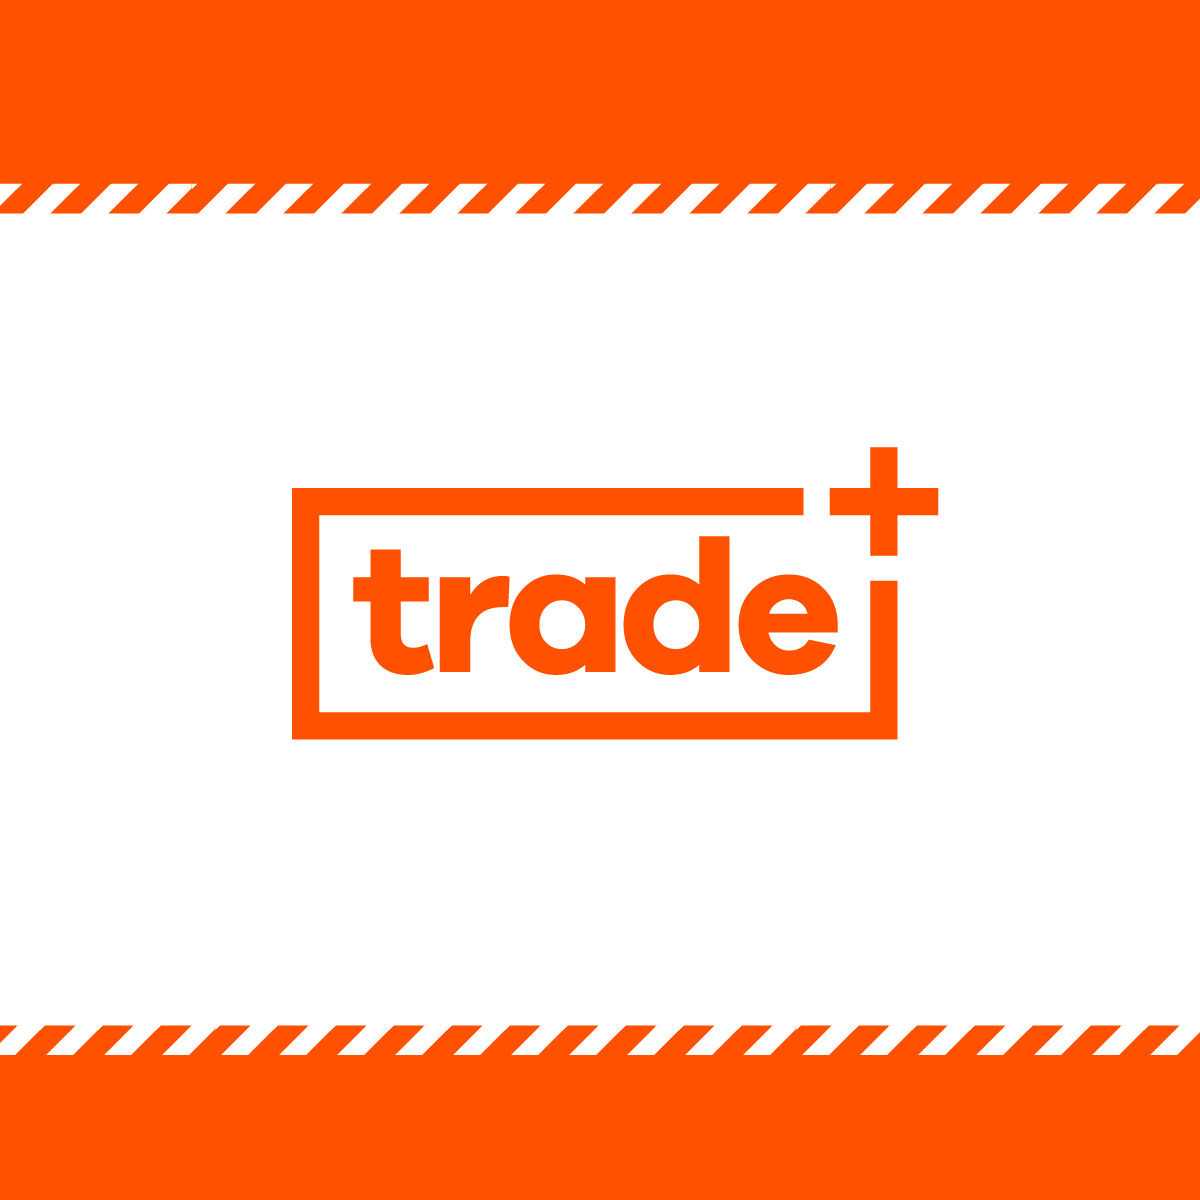 National Tiles Trade + Brand Identity Brand Mark with striped orange banners on white